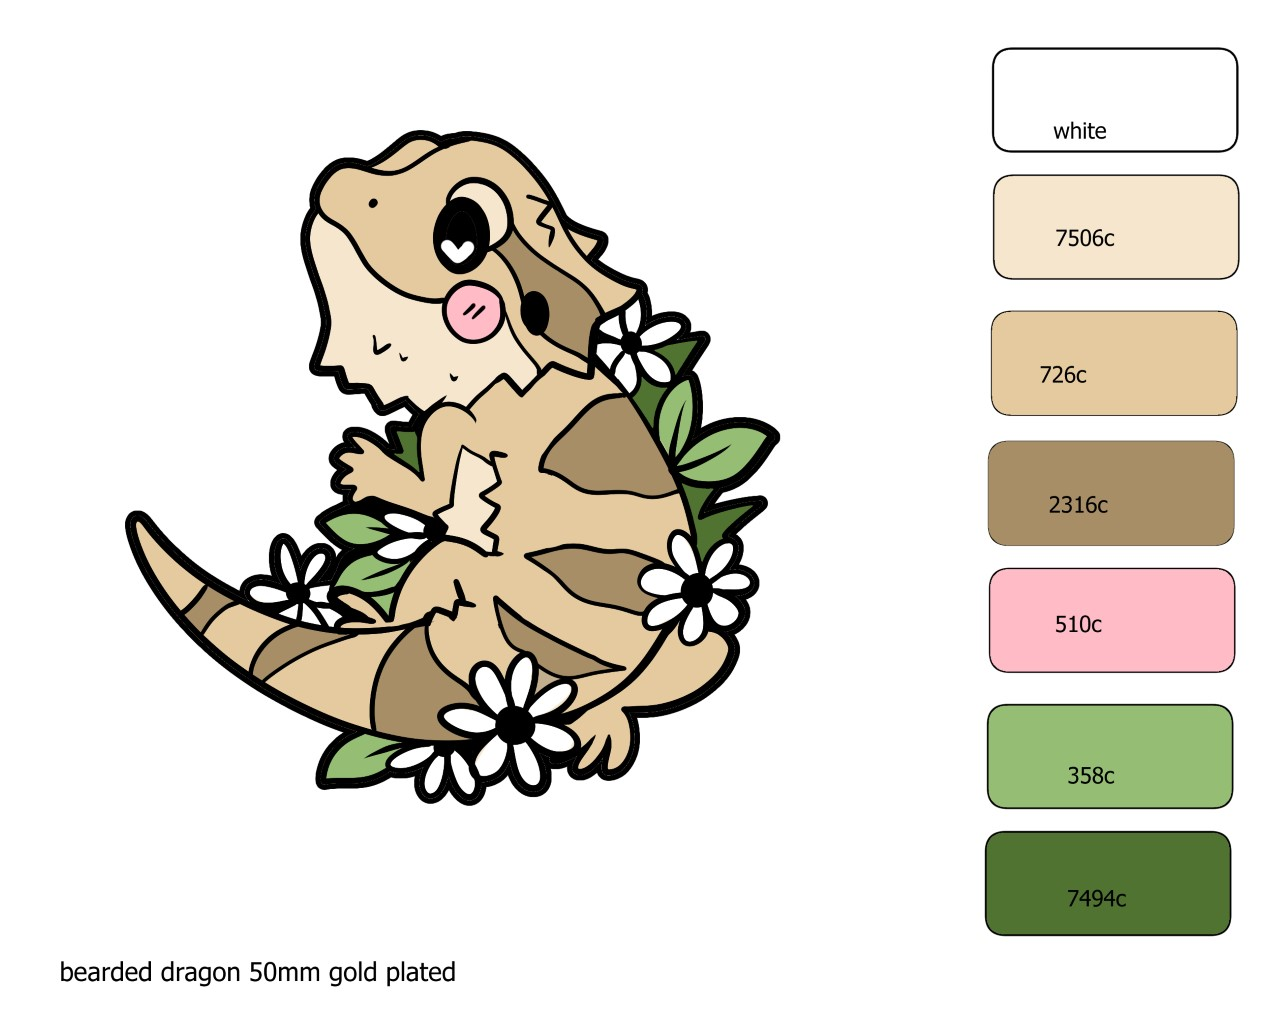 thumbnail_bearded dragon.jpg